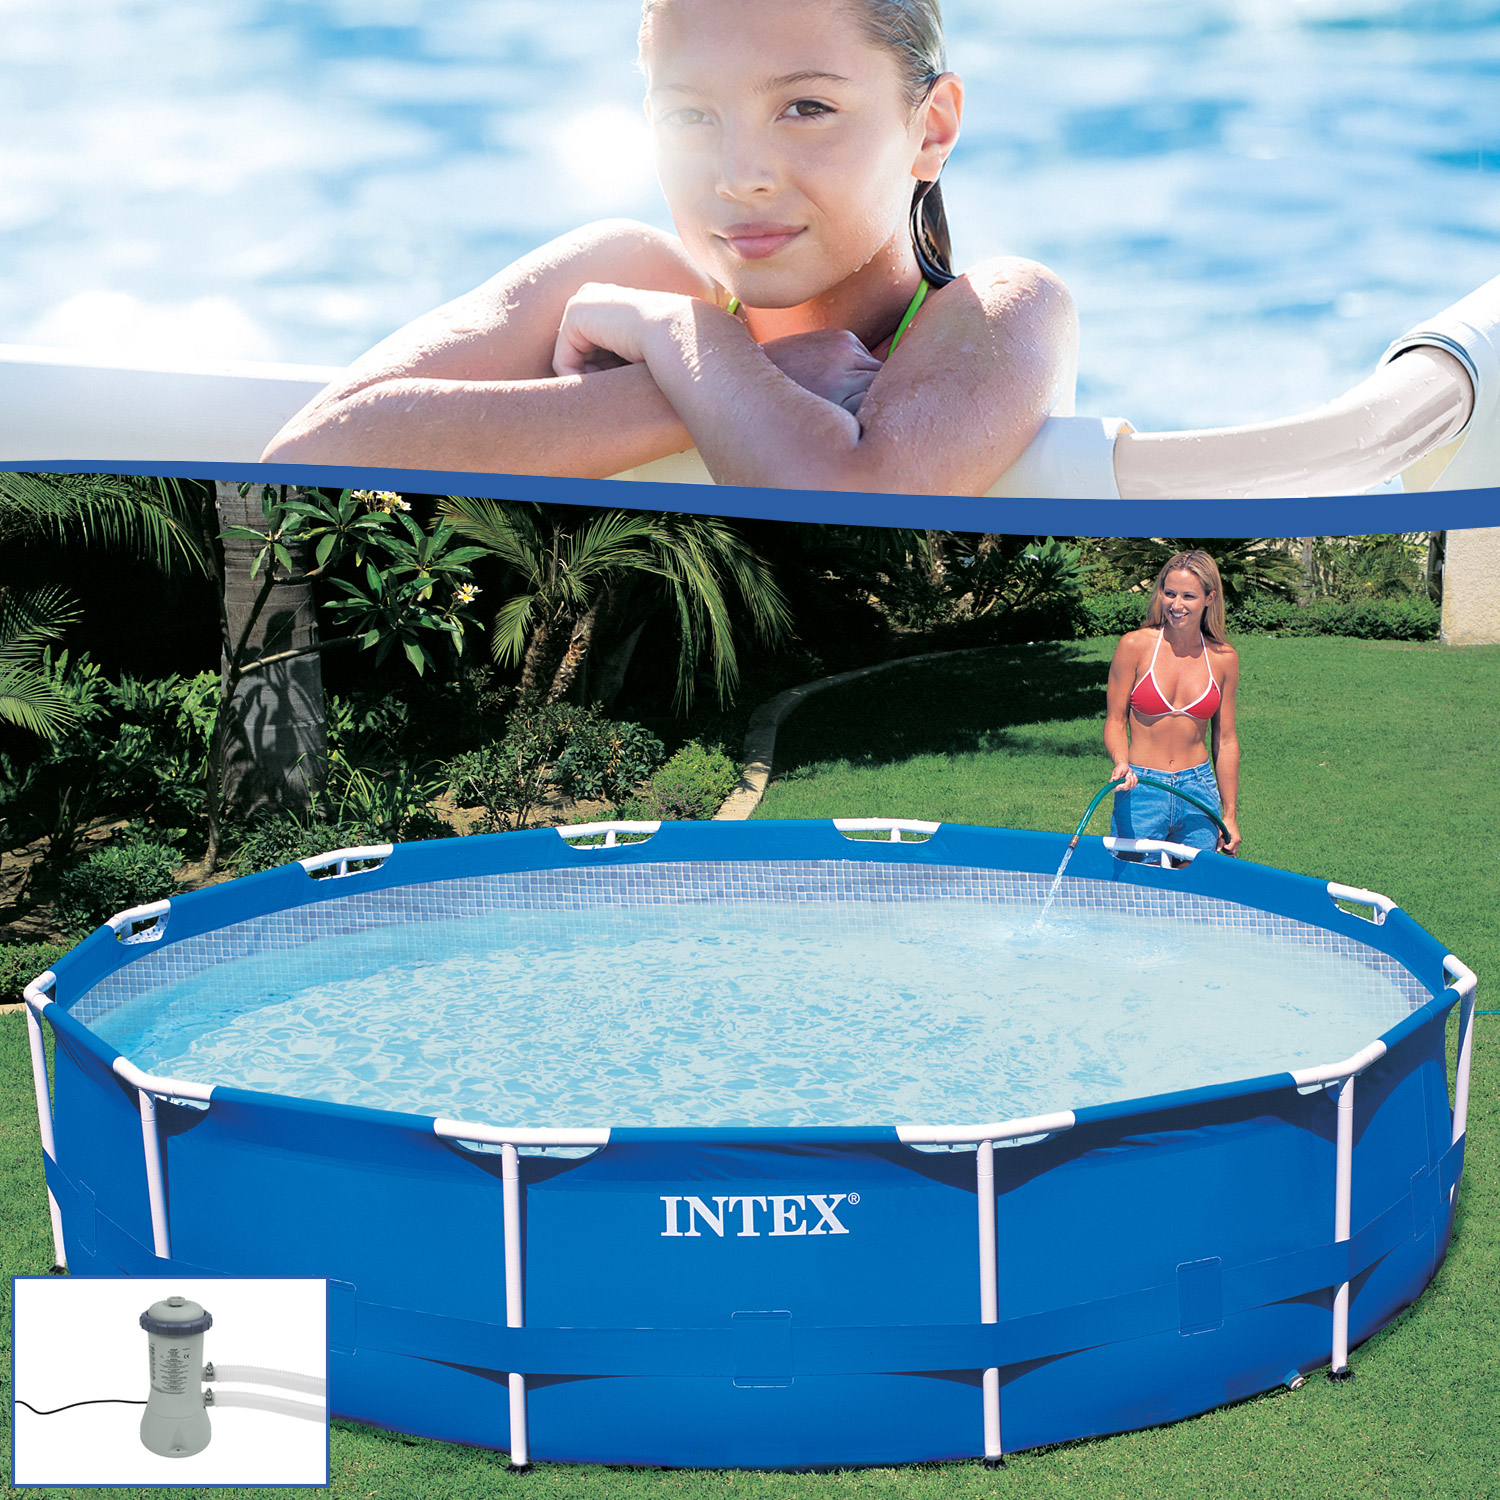 intex 366x76 stahlwand frame swimming pool schwimmbecken schwimmbad pumpe 28212 ebay. Black Bedroom Furniture Sets. Home Design Ideas